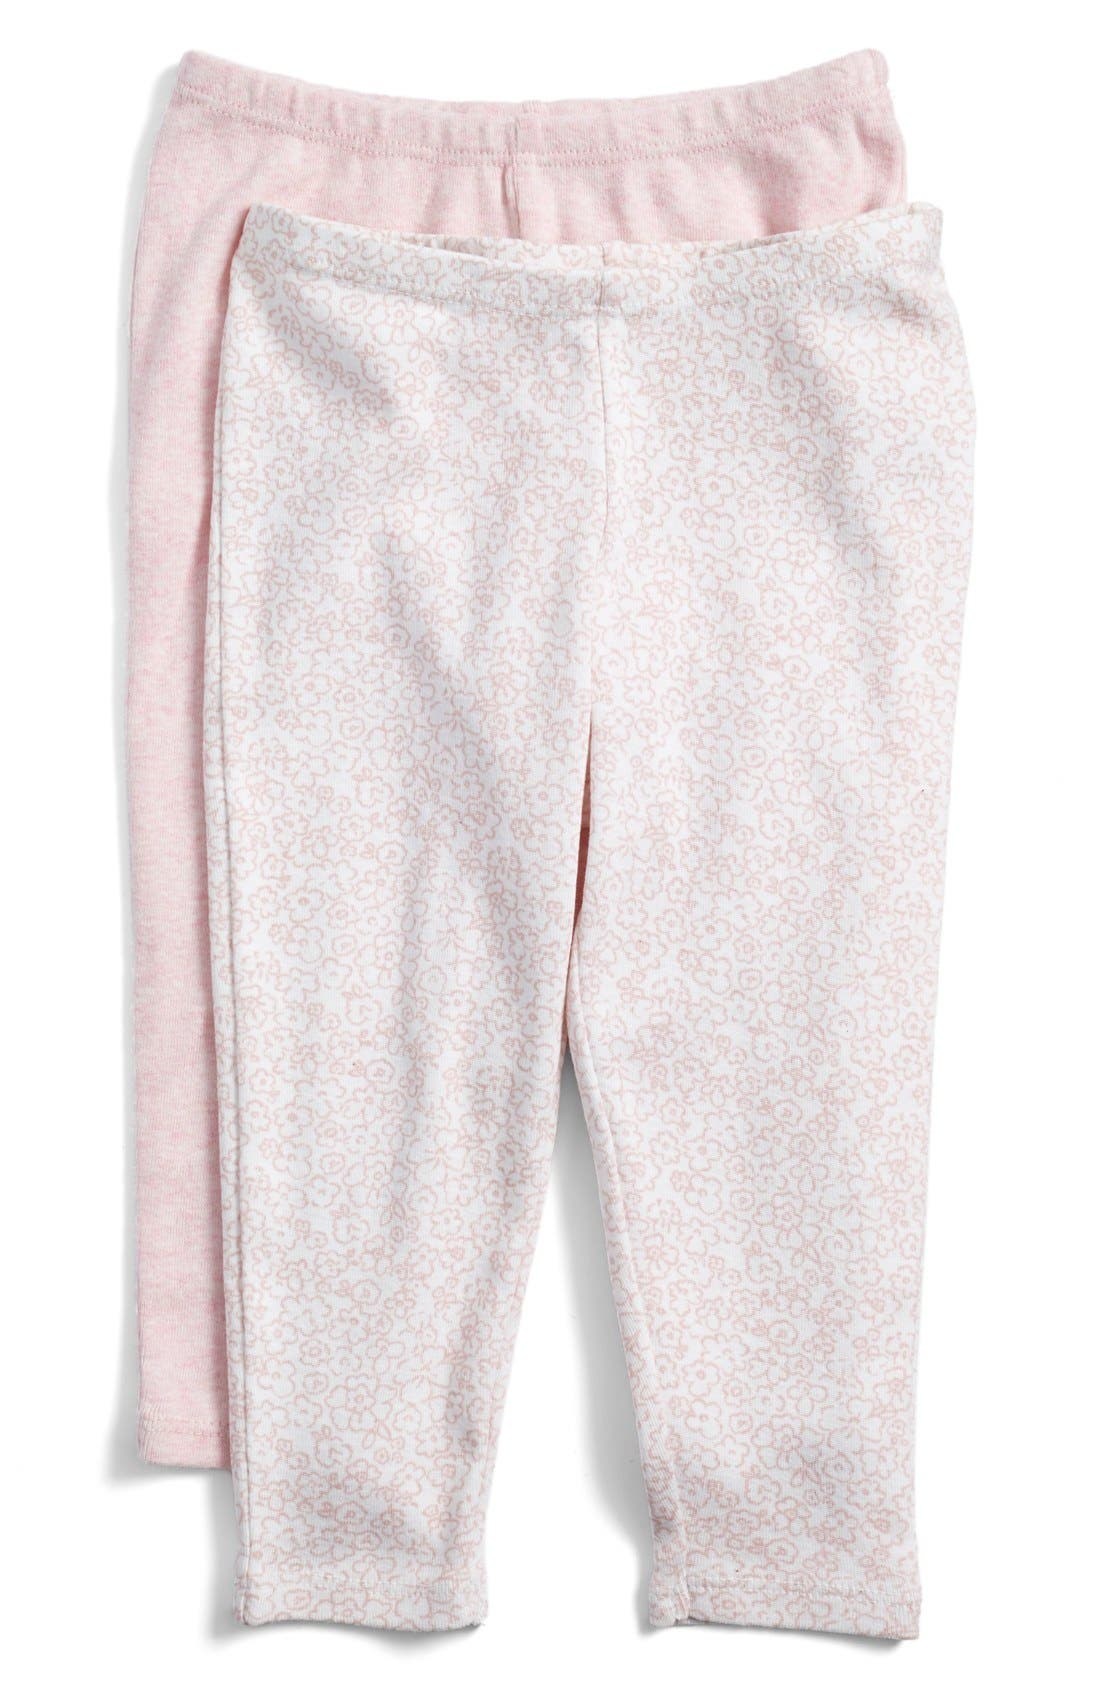 Nordstrom Baby Cotton Leggings (2-Pack) (Baby Girls)